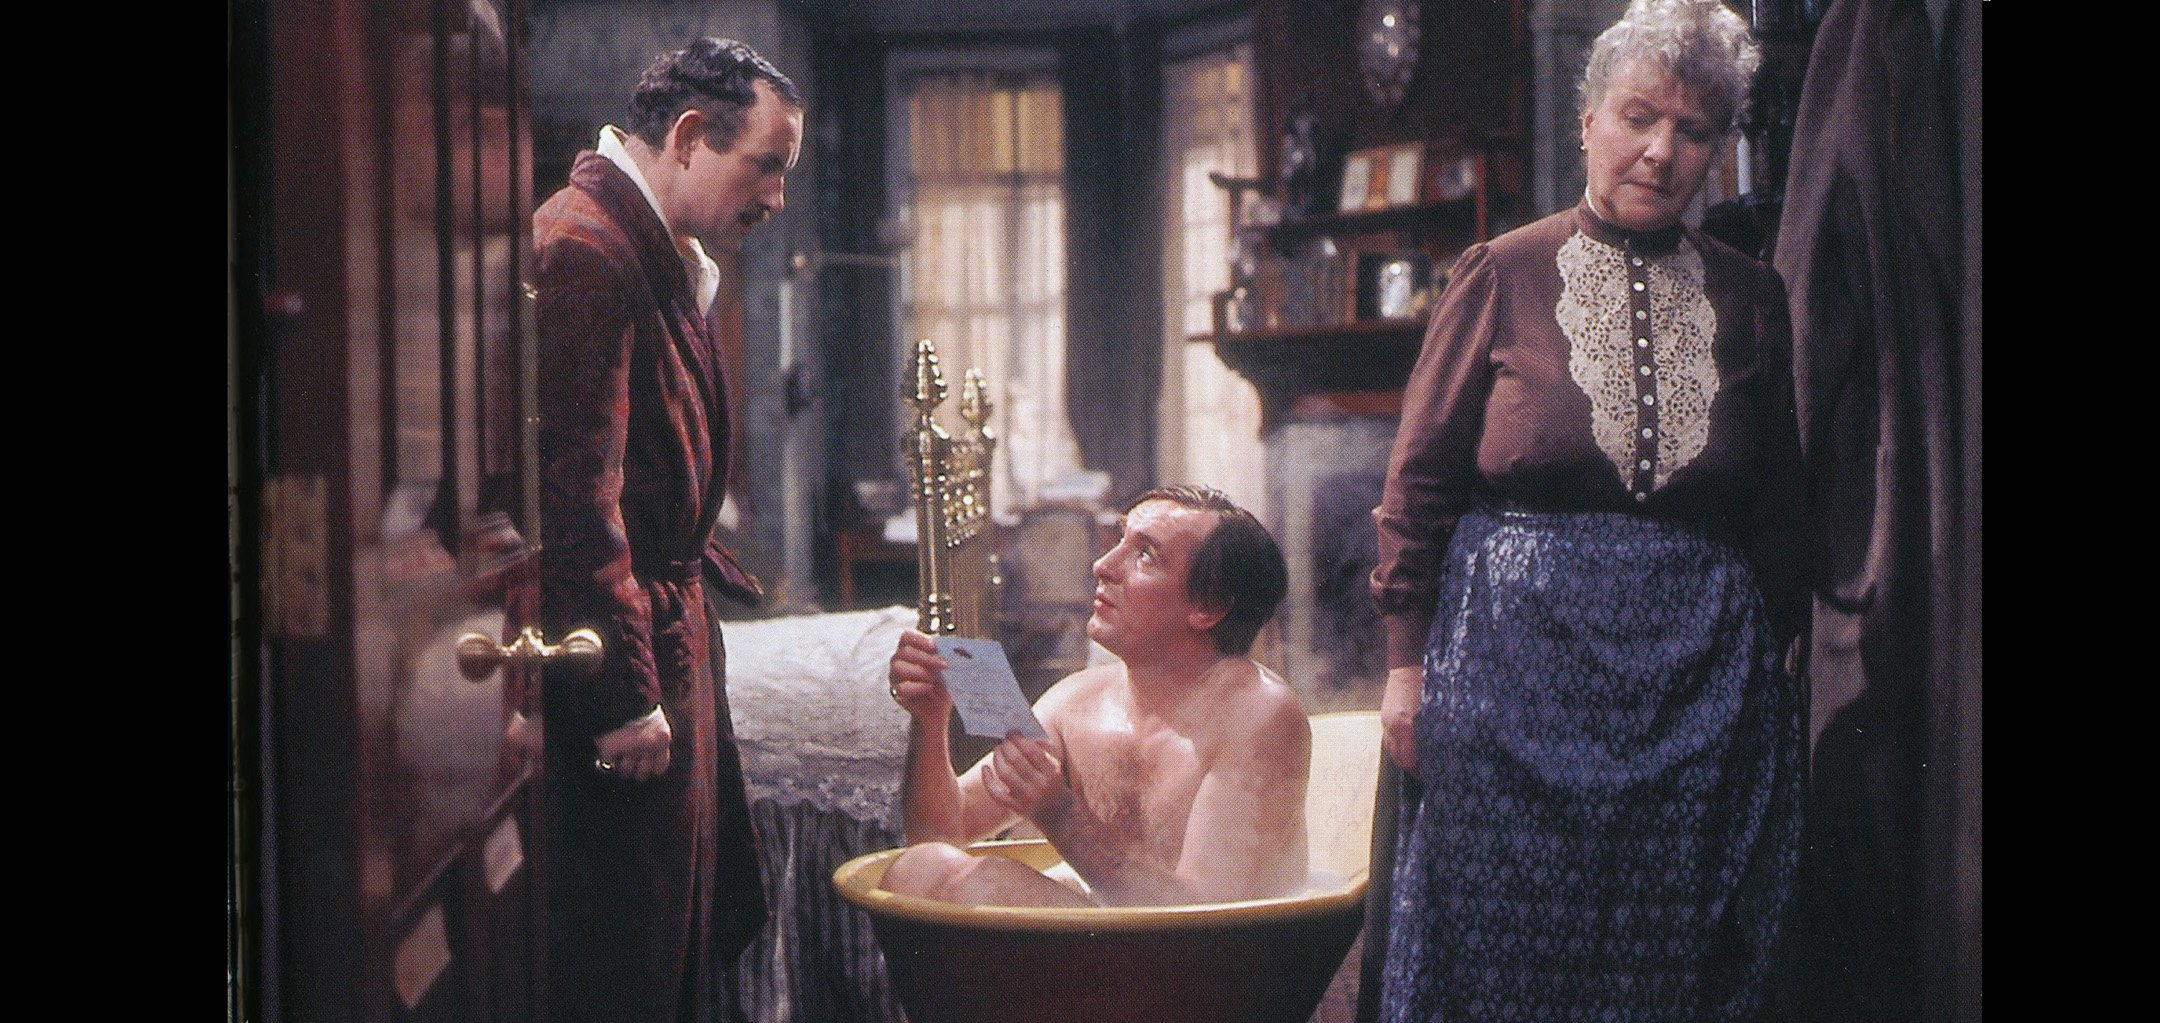 Colin Blakely, Robert Stephens and Irene Handl in The Private Life of Sherlock Holmes (1970)